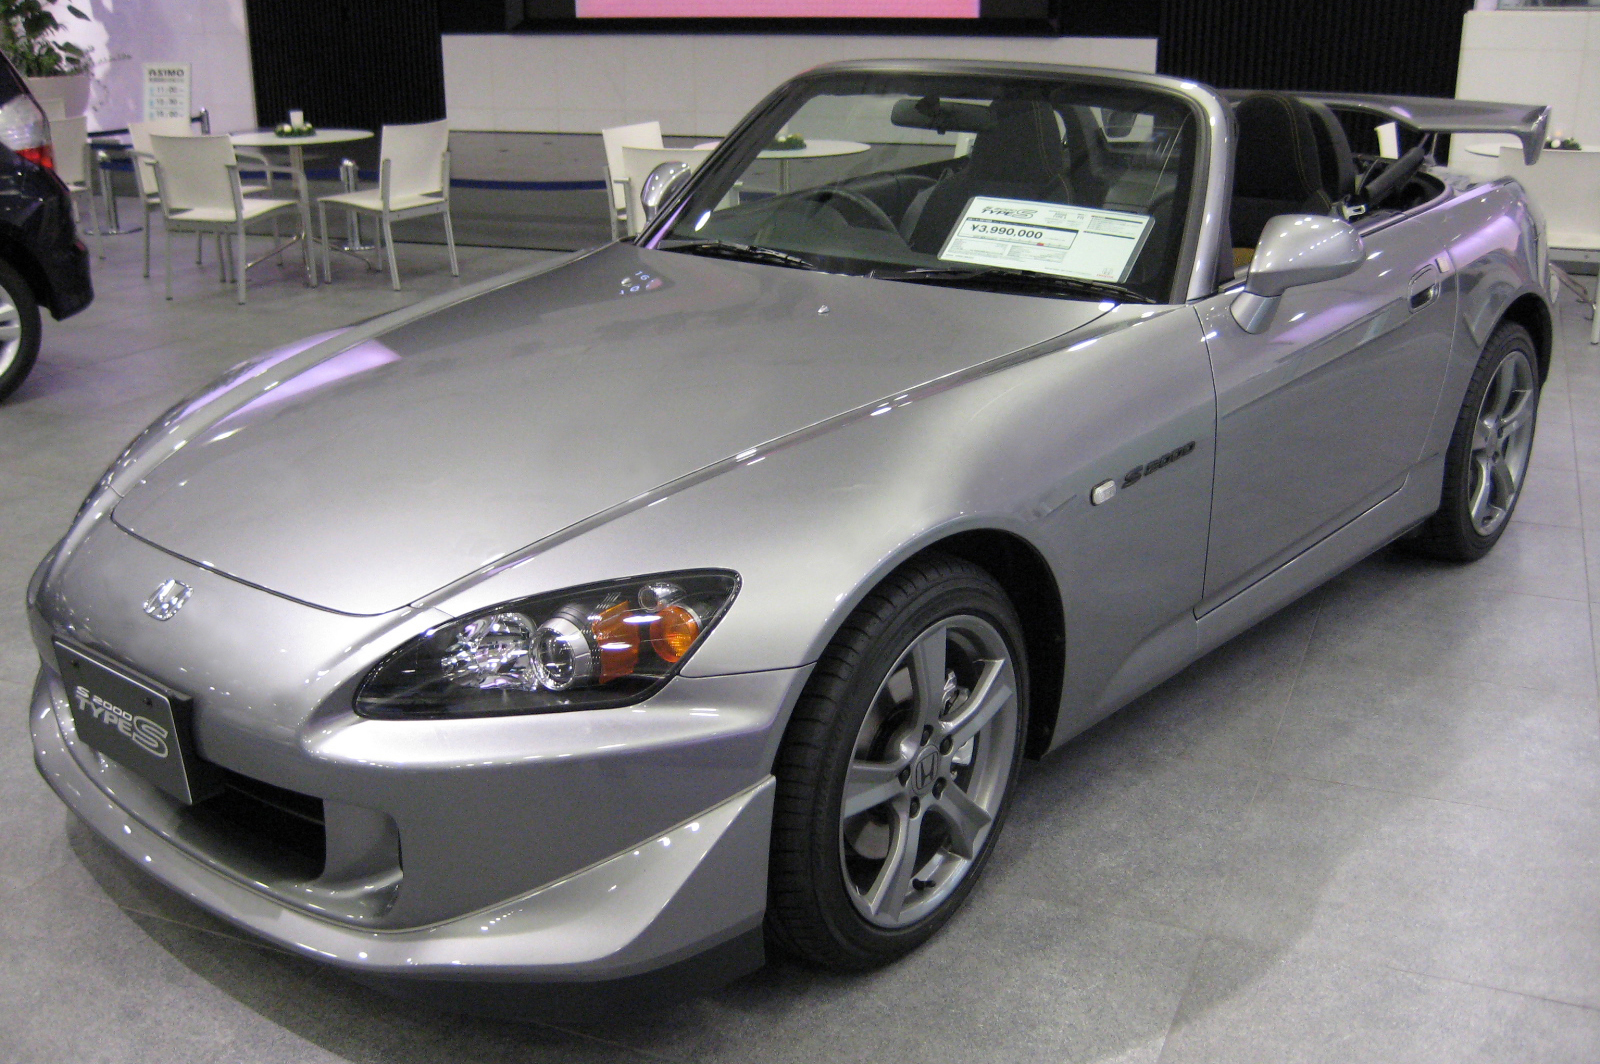 file 2007 honda s2000 wikimedia commons. Black Bedroom Furniture Sets. Home Design Ideas